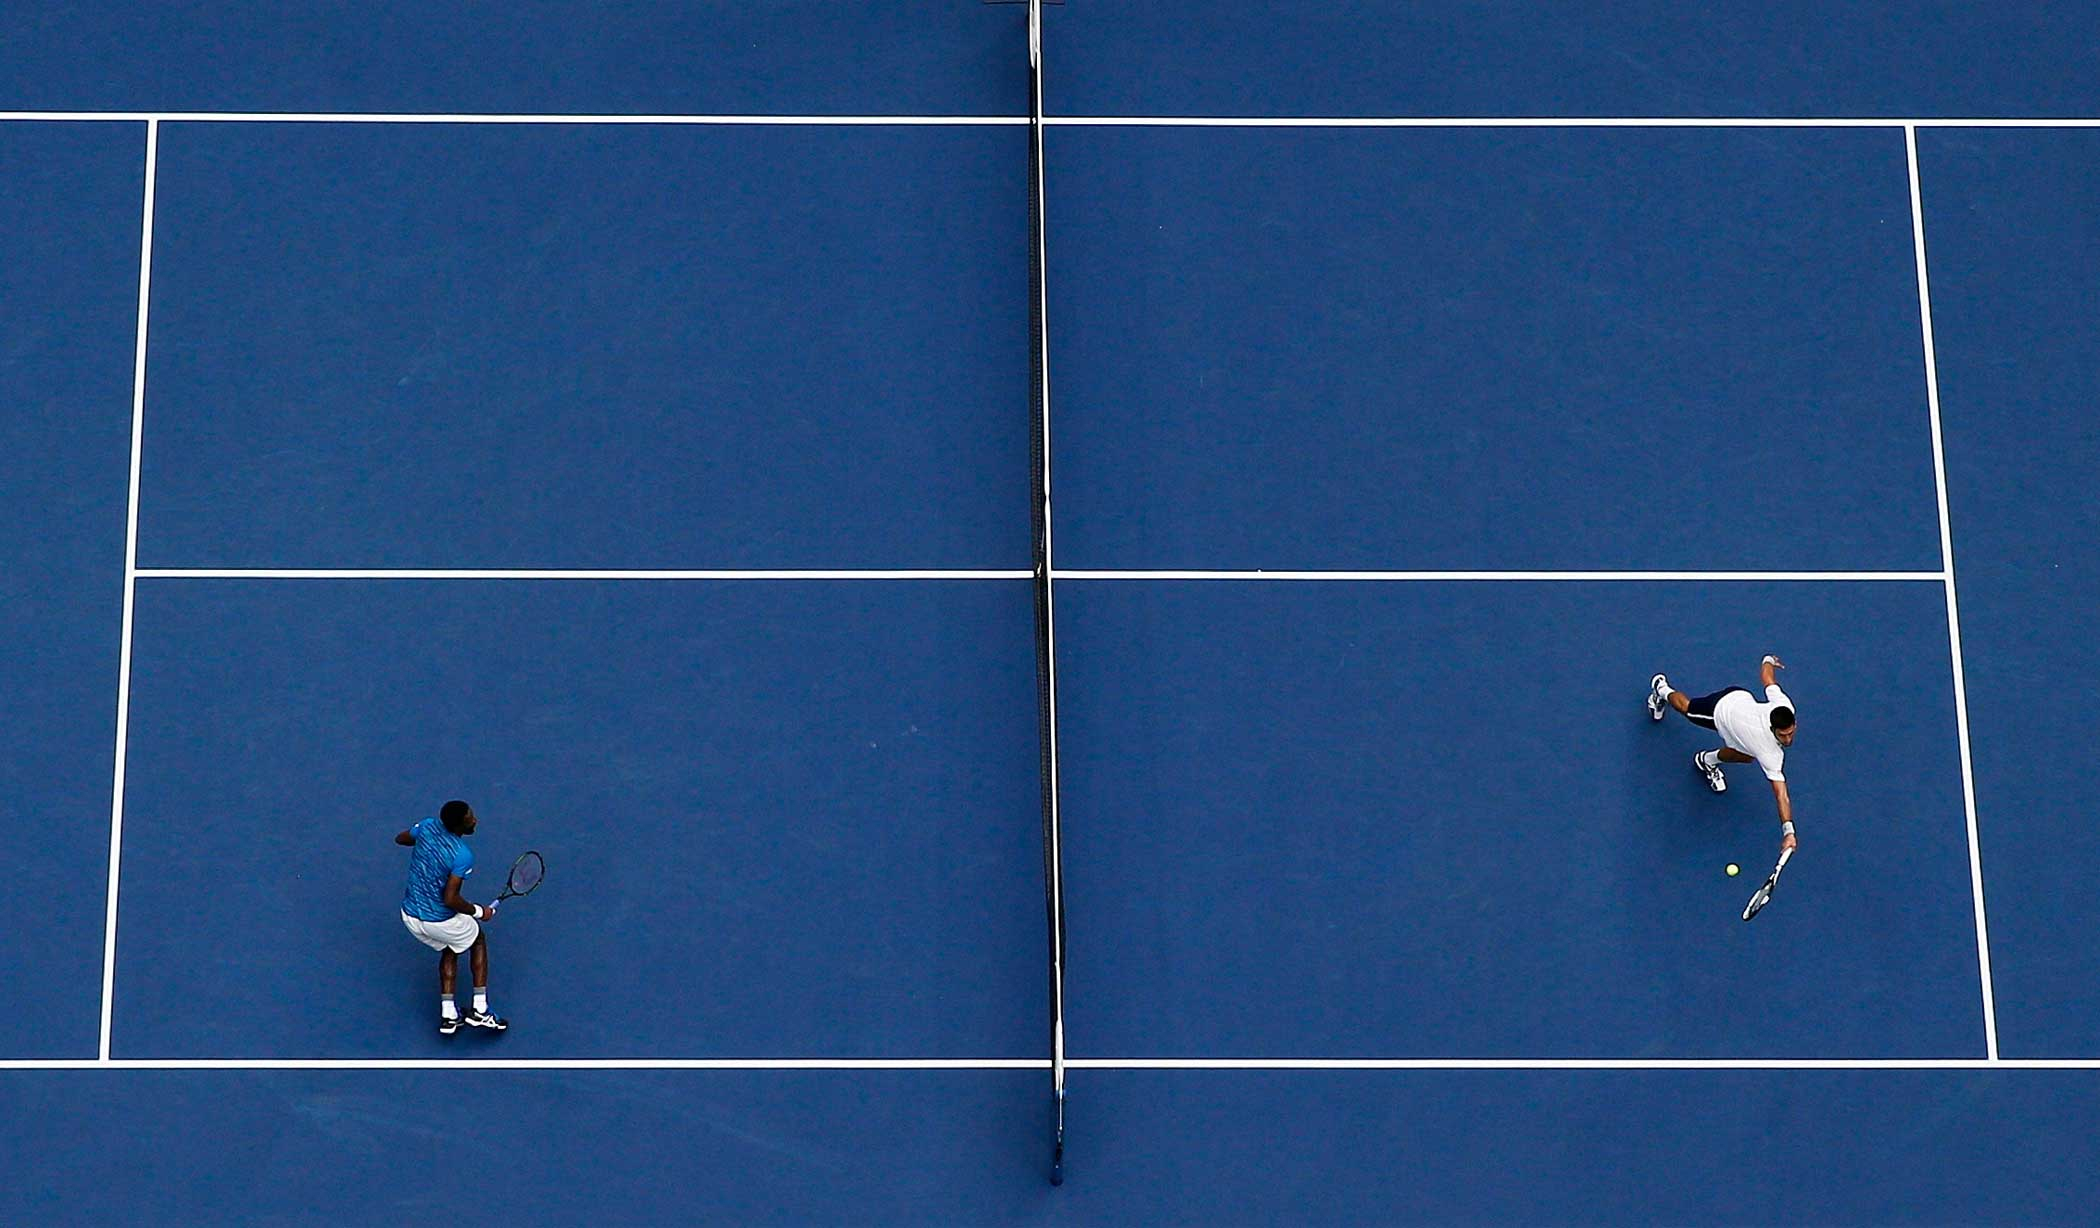 Novak Djokovic of Serbia returns a shot to Gael Monfils of France during their Men's Singles Semifinal Match at the US Open.